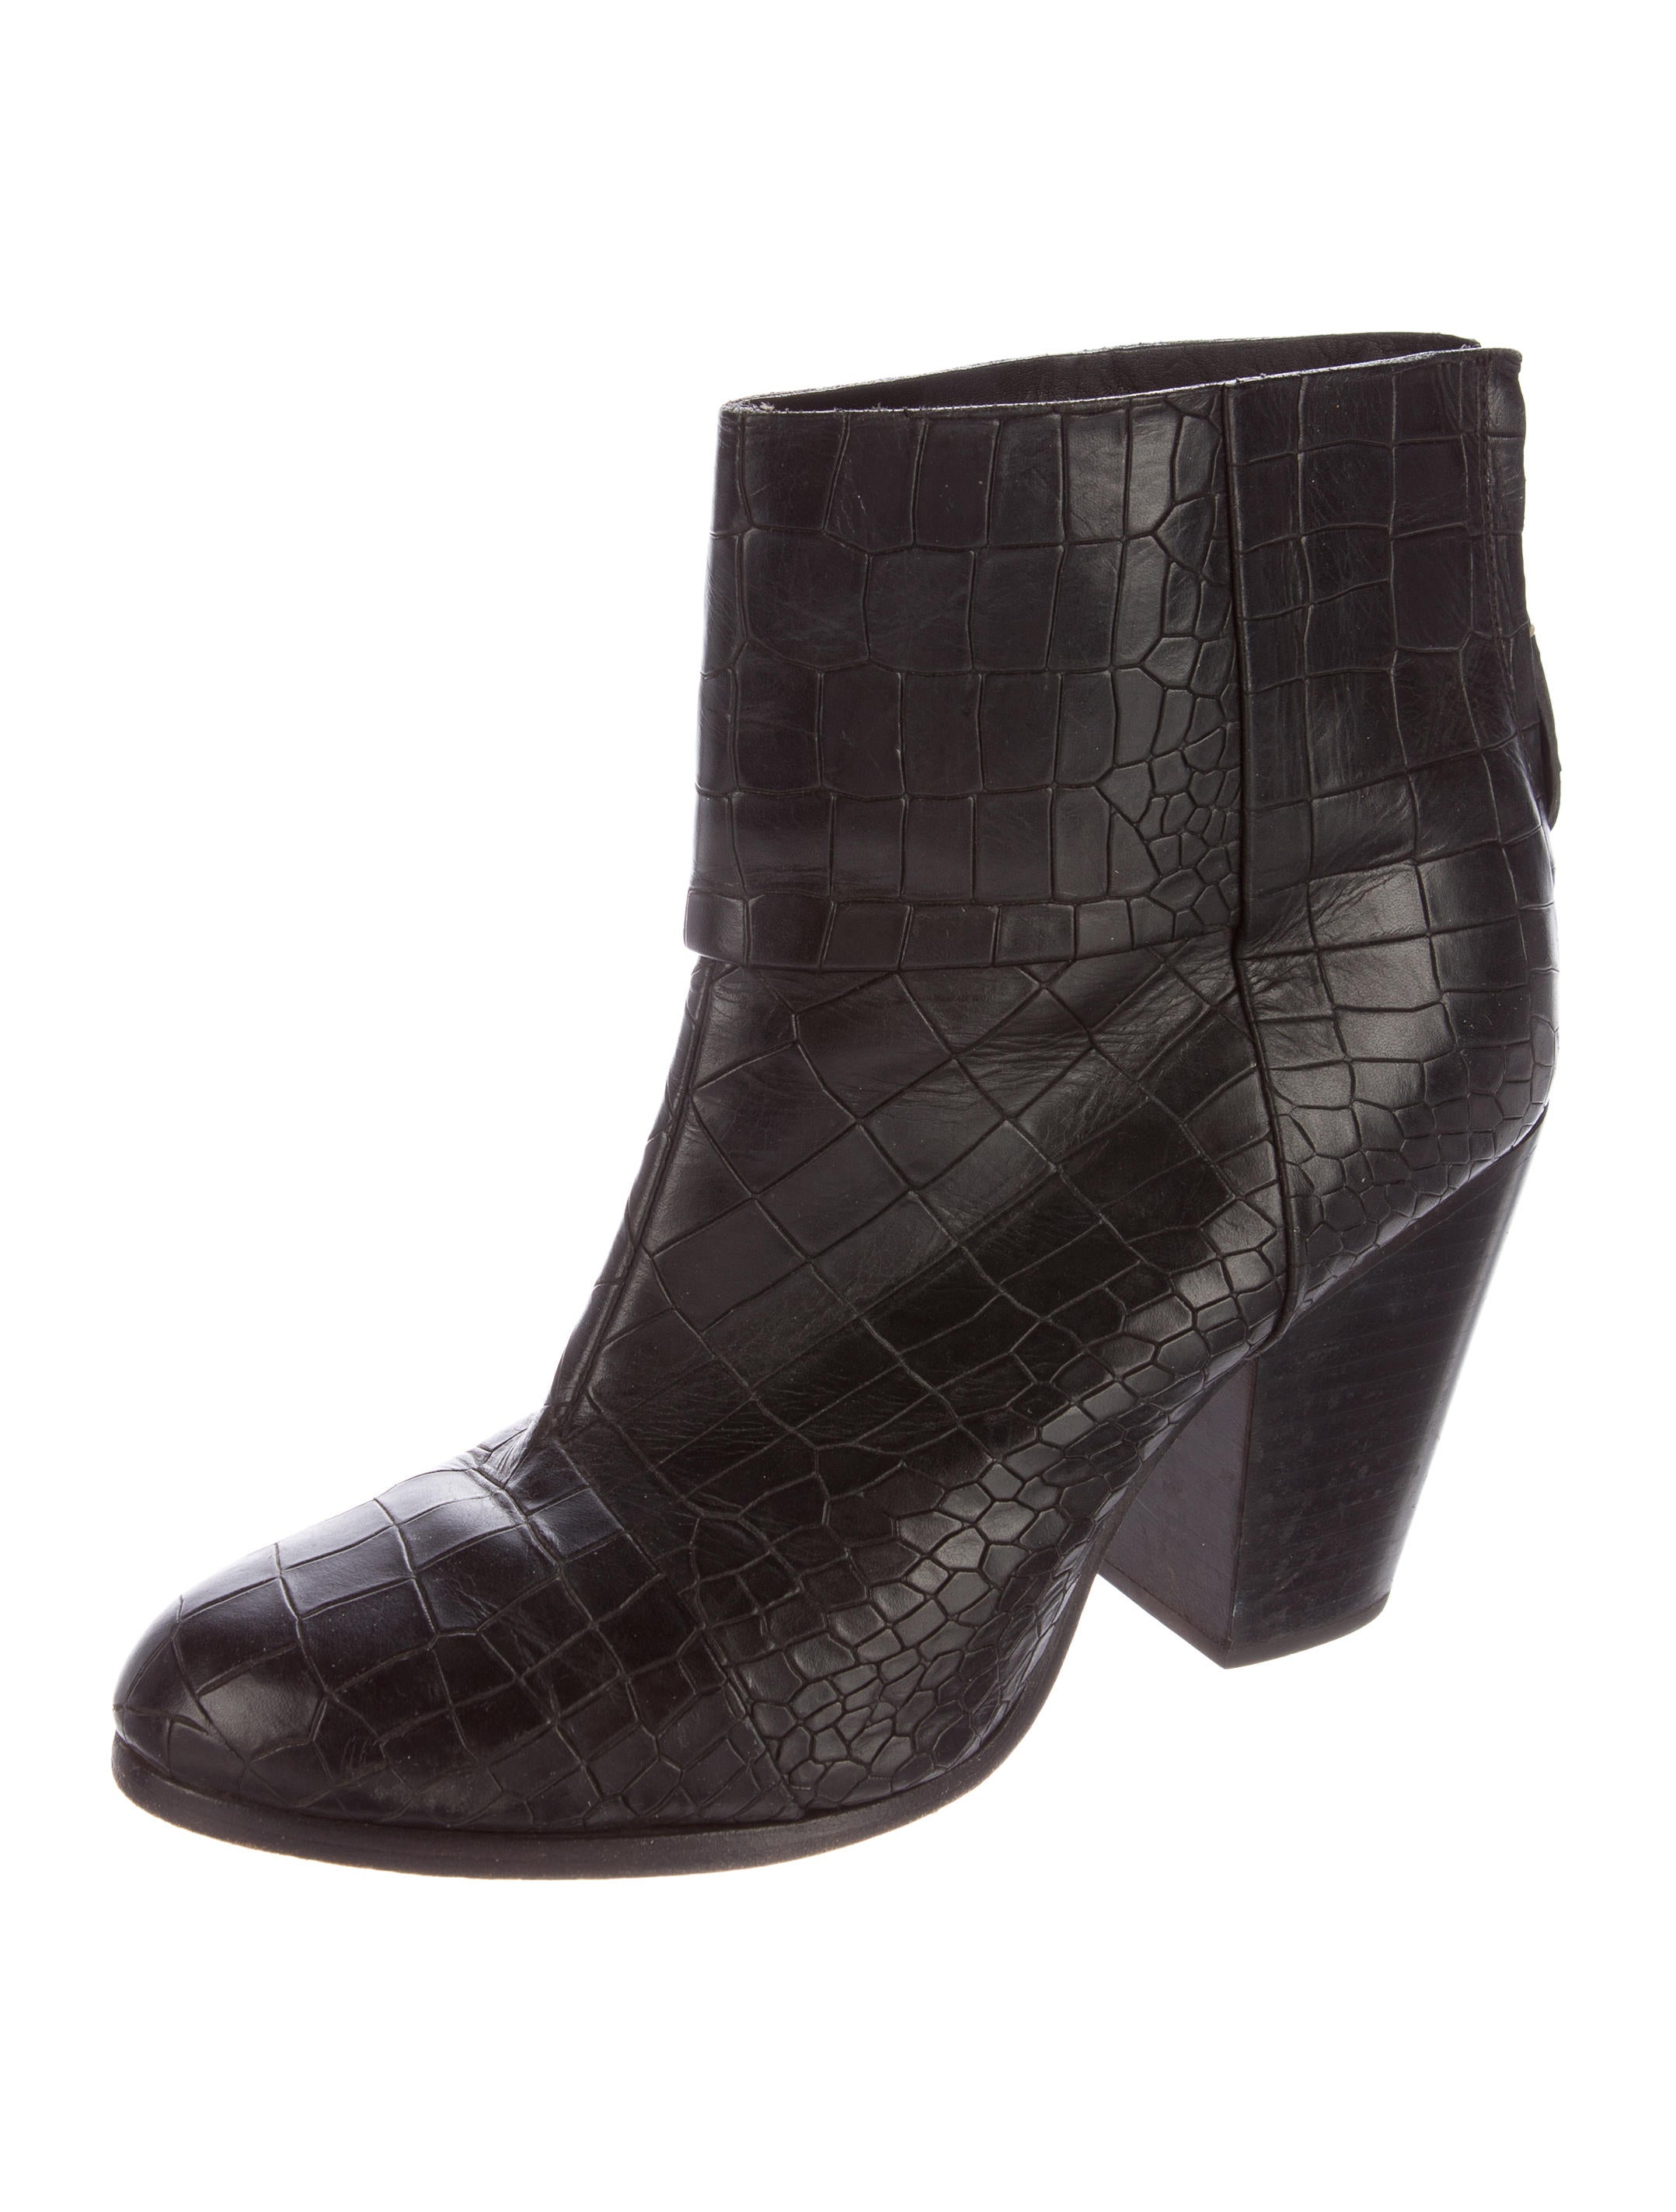 rag bone embossed leather boots shoes wragb62990